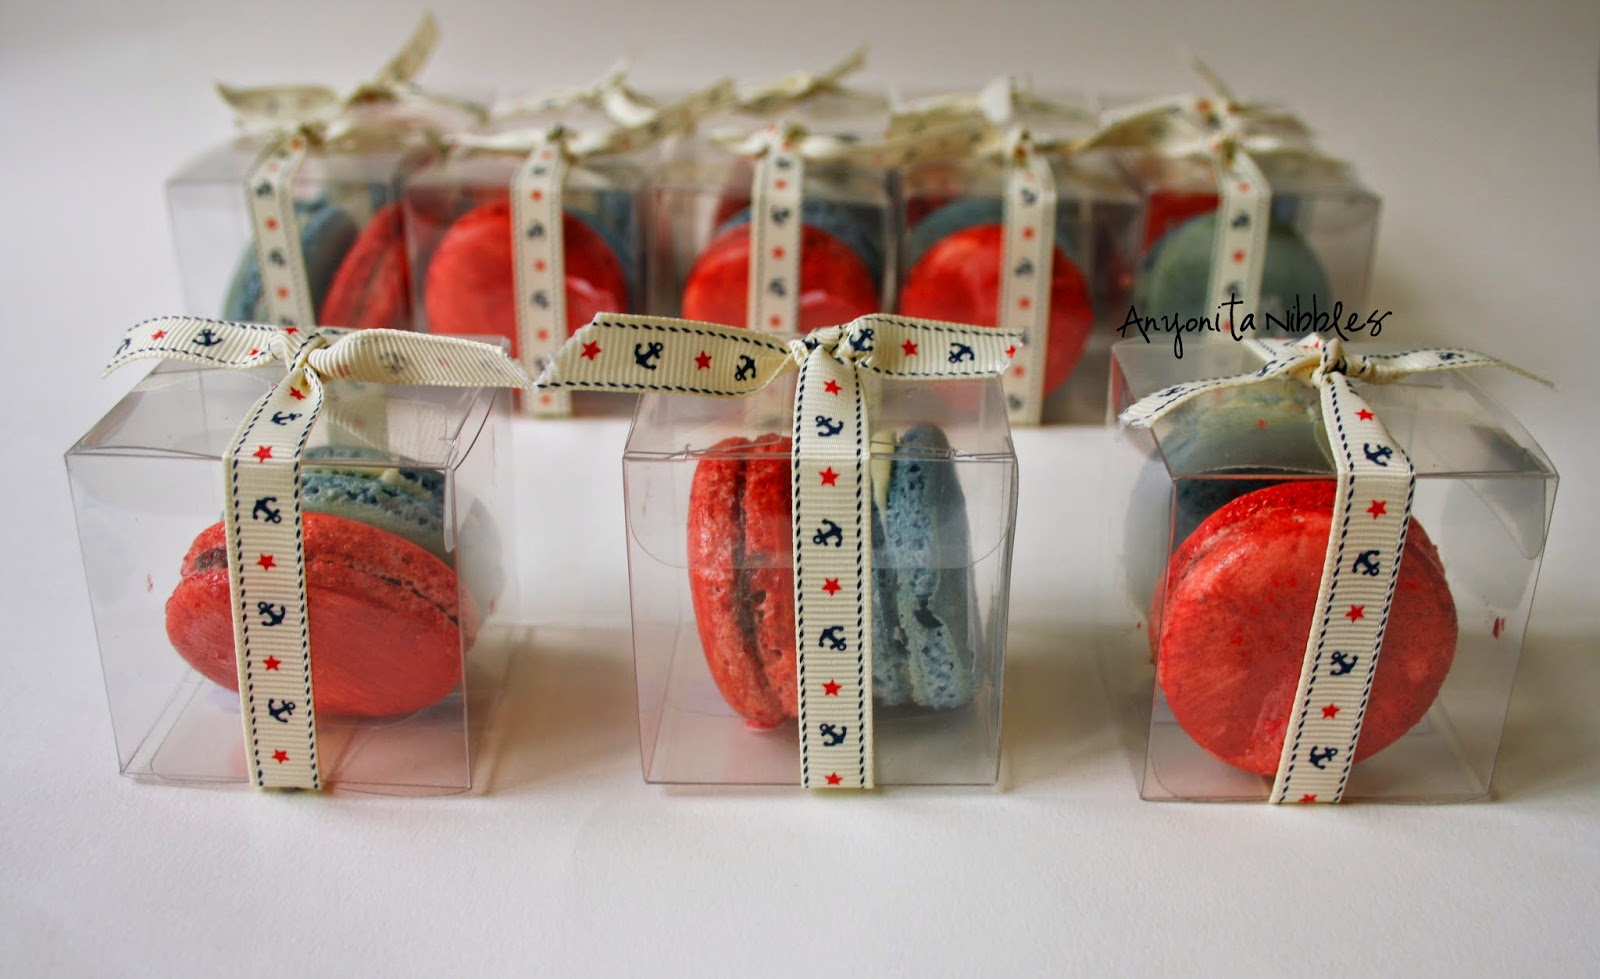 I love the idea of giving these as favors at a 4th of July barbecue!